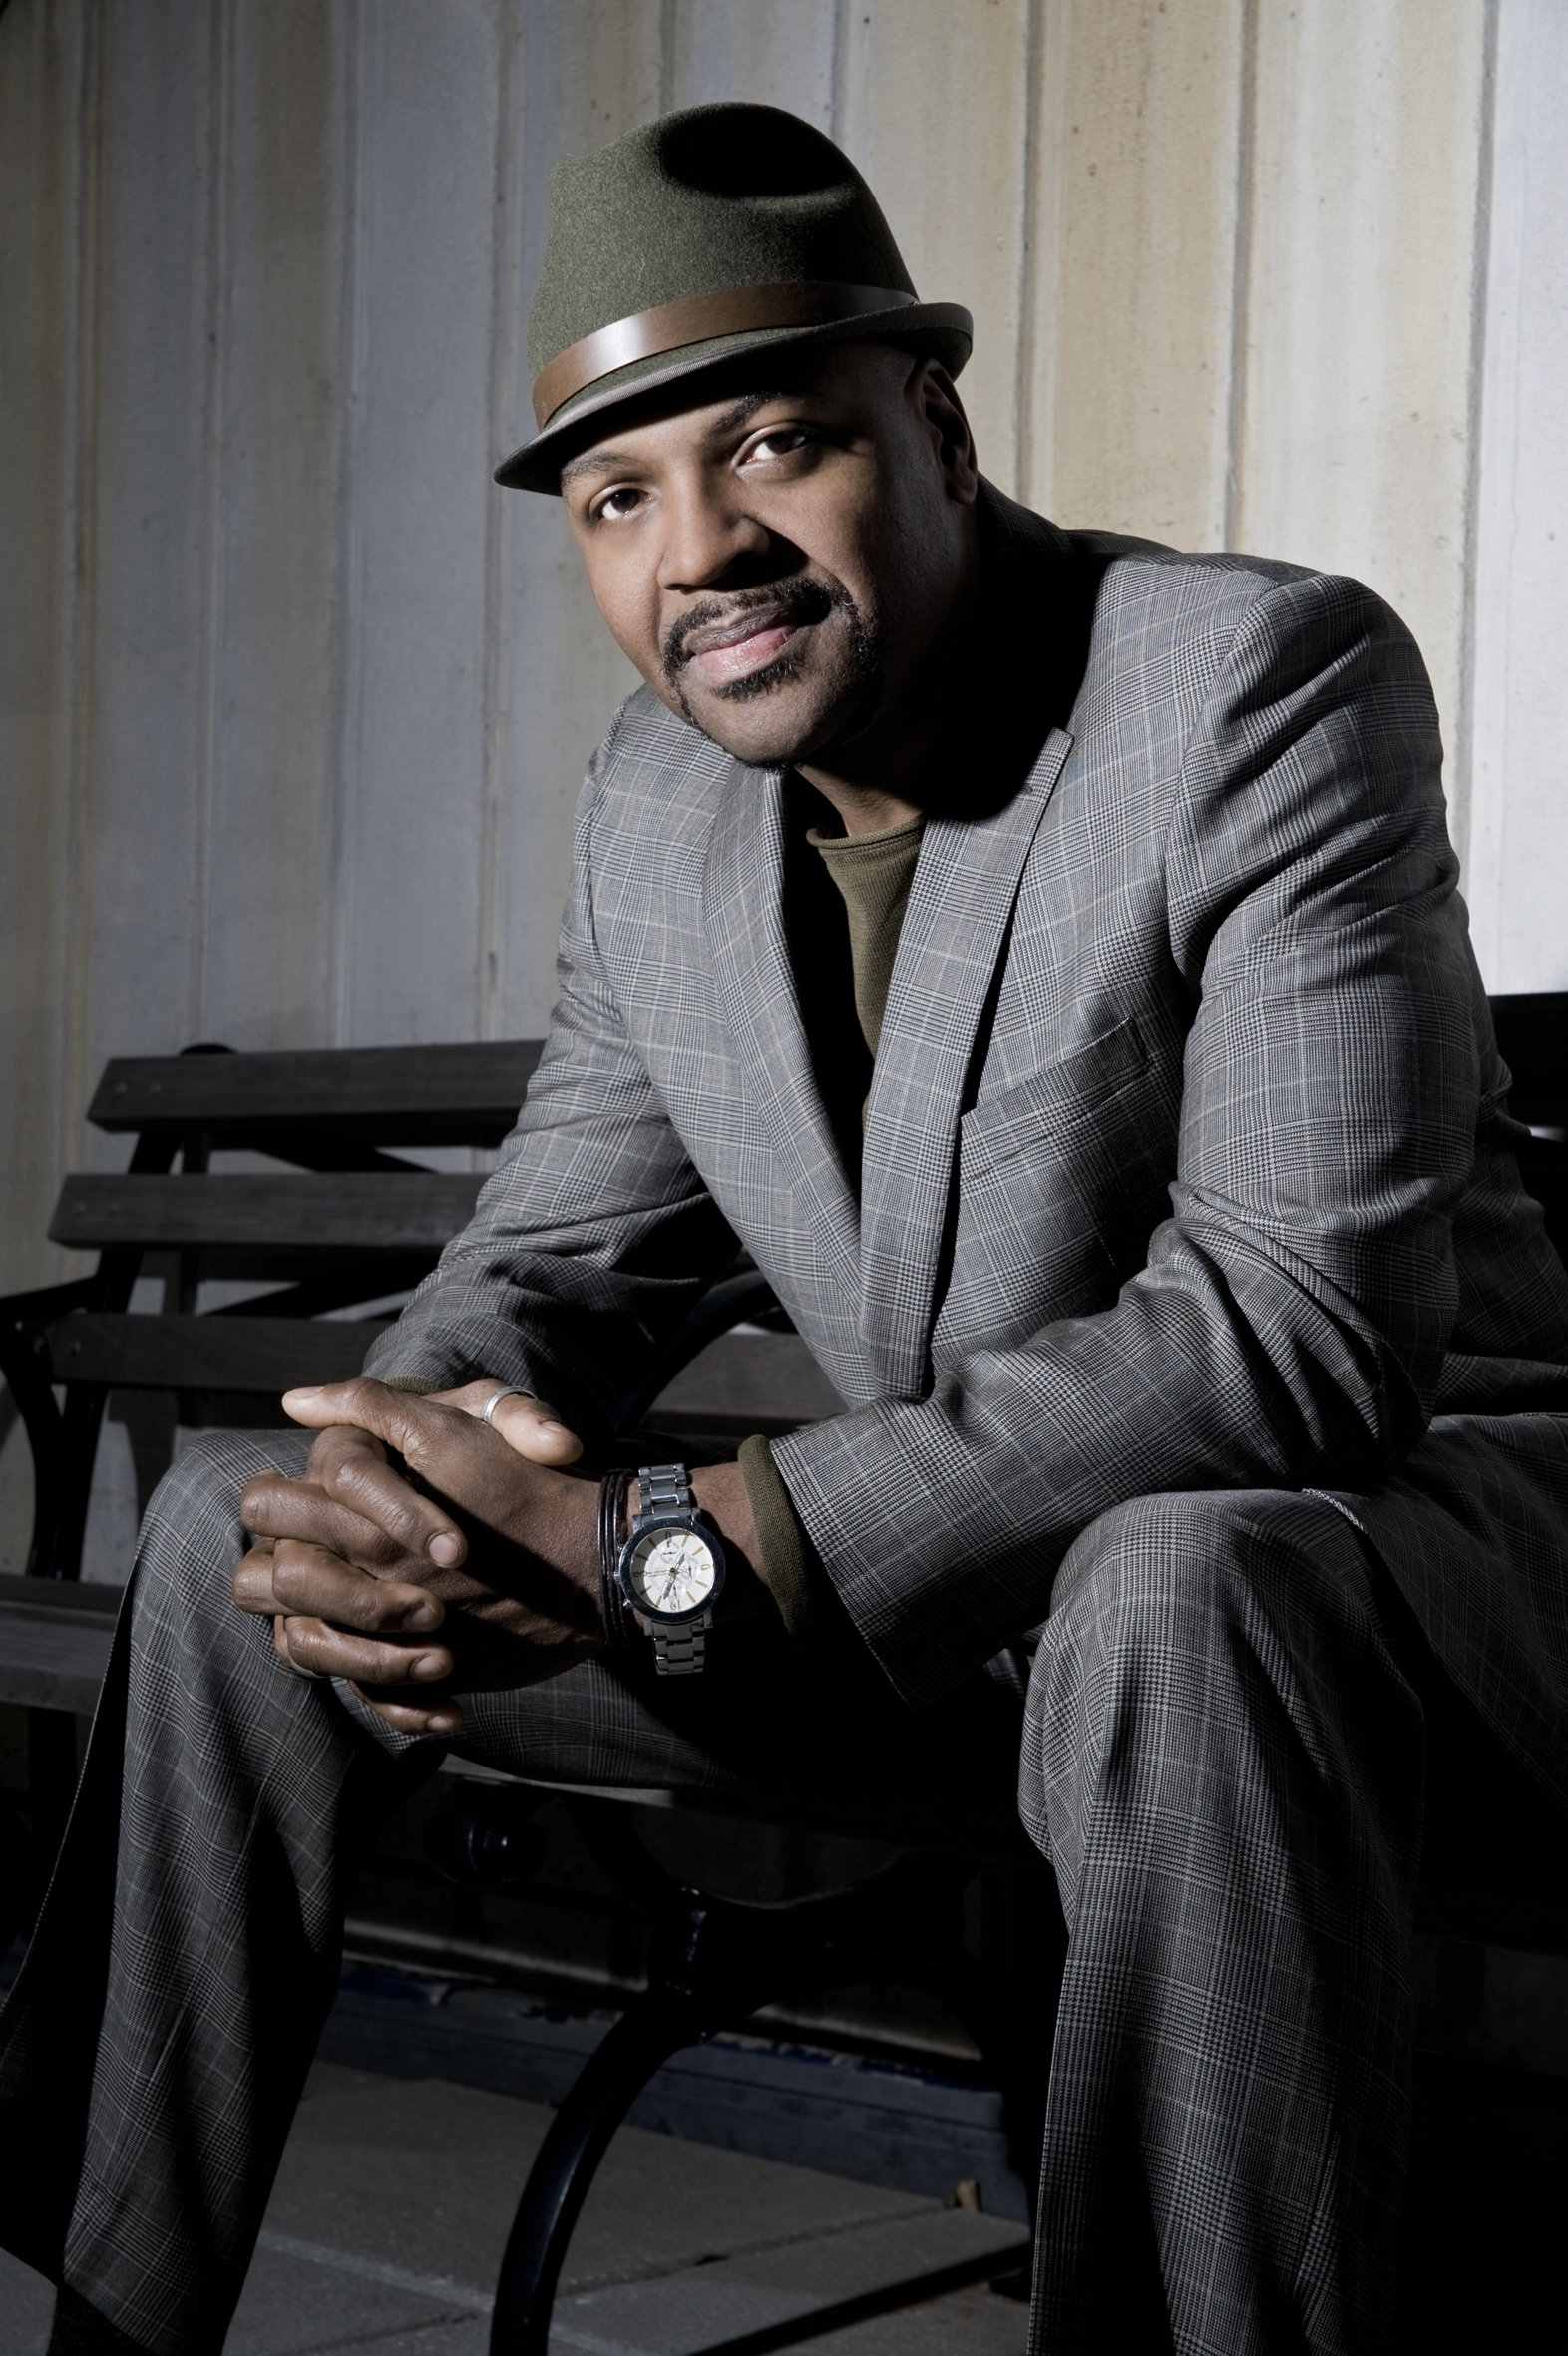 Bobby Broom by Anna Dilthey